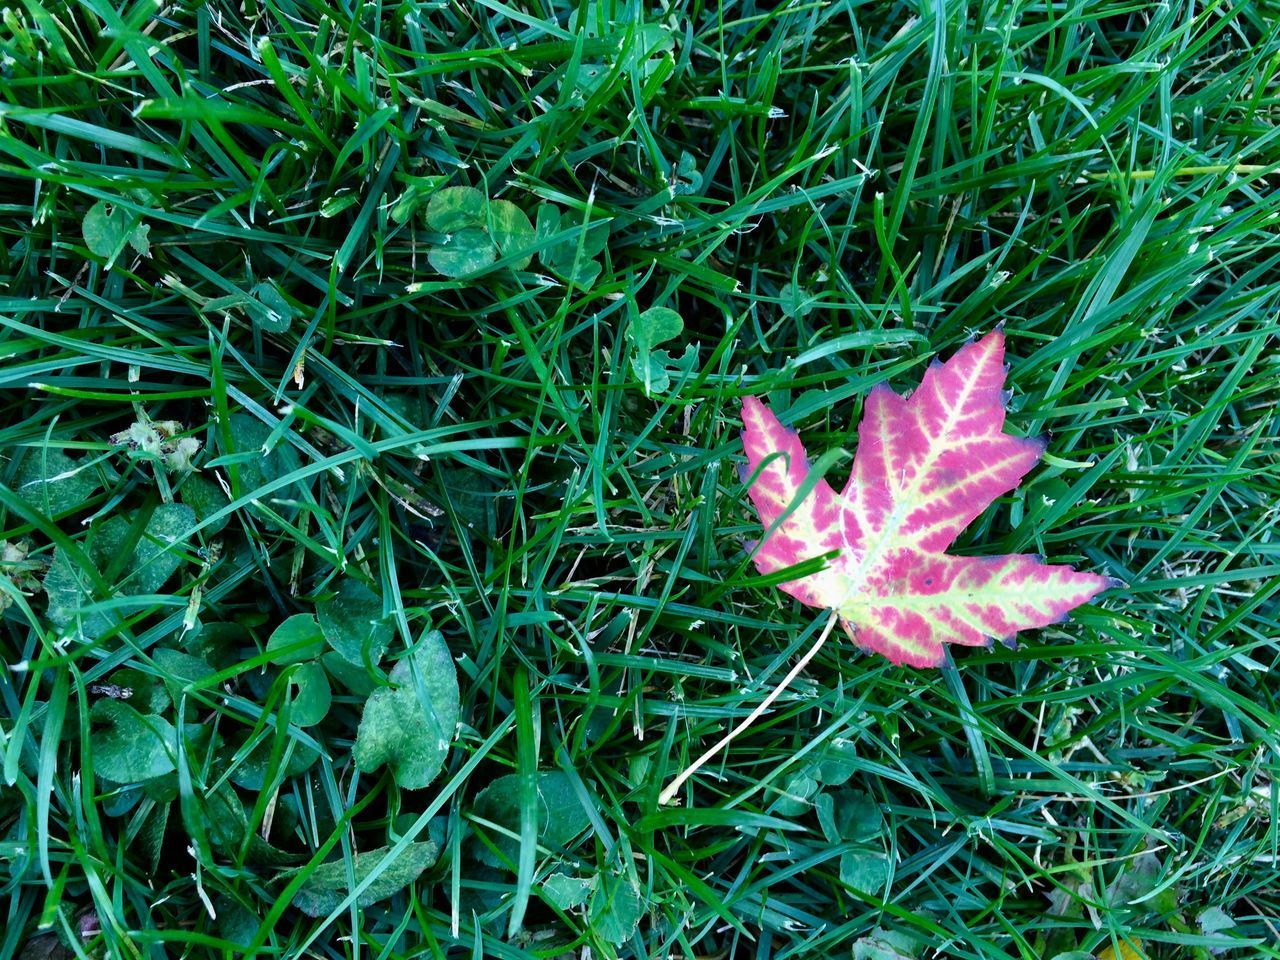 autumn maple leaf in the grass Plant Green Color Growth Nature Flowering Plant Land Field Beauty In Nature Grass High Angle View Pink Color Vulnerability  Freshness Leaf Fragility Day Plant Part No People Close-up Outdoors Purple Autumn Change Backgrounds Season  Maple Close Up